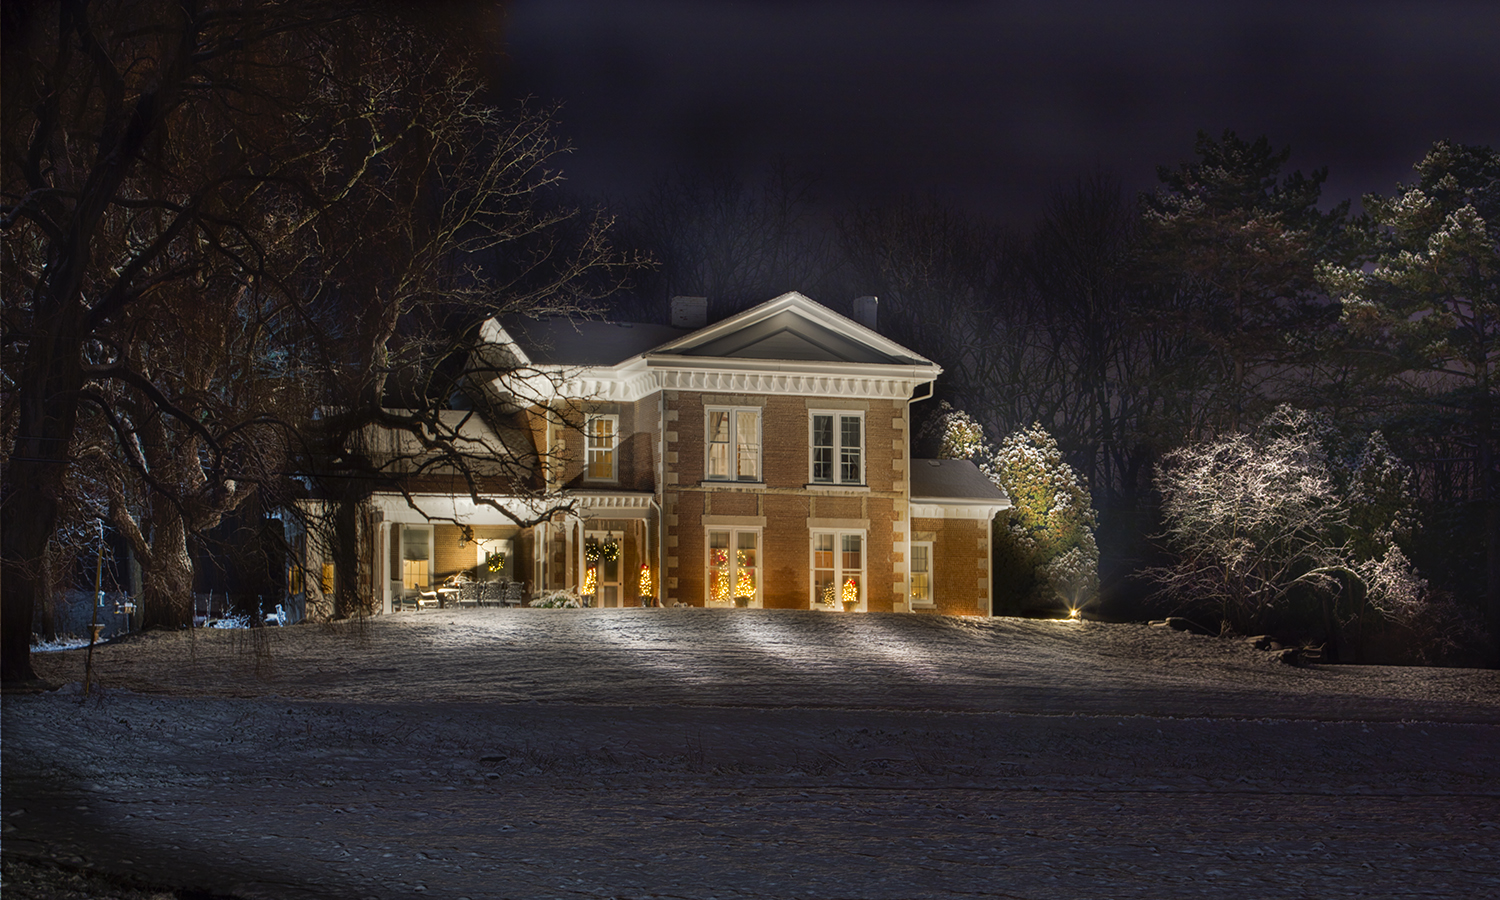 For This Week in Photos, were are showcasing the captivating beauty of winter in the Finger Lakes through a selection of works by HWS Chief Photographer Kevin Colton, who in 2017 earned best photographer in higher education with a Gold Award from the Council for the Advancement and Support of Education. Here a cobblestone home on Route 14 stands illuminated in the snow.